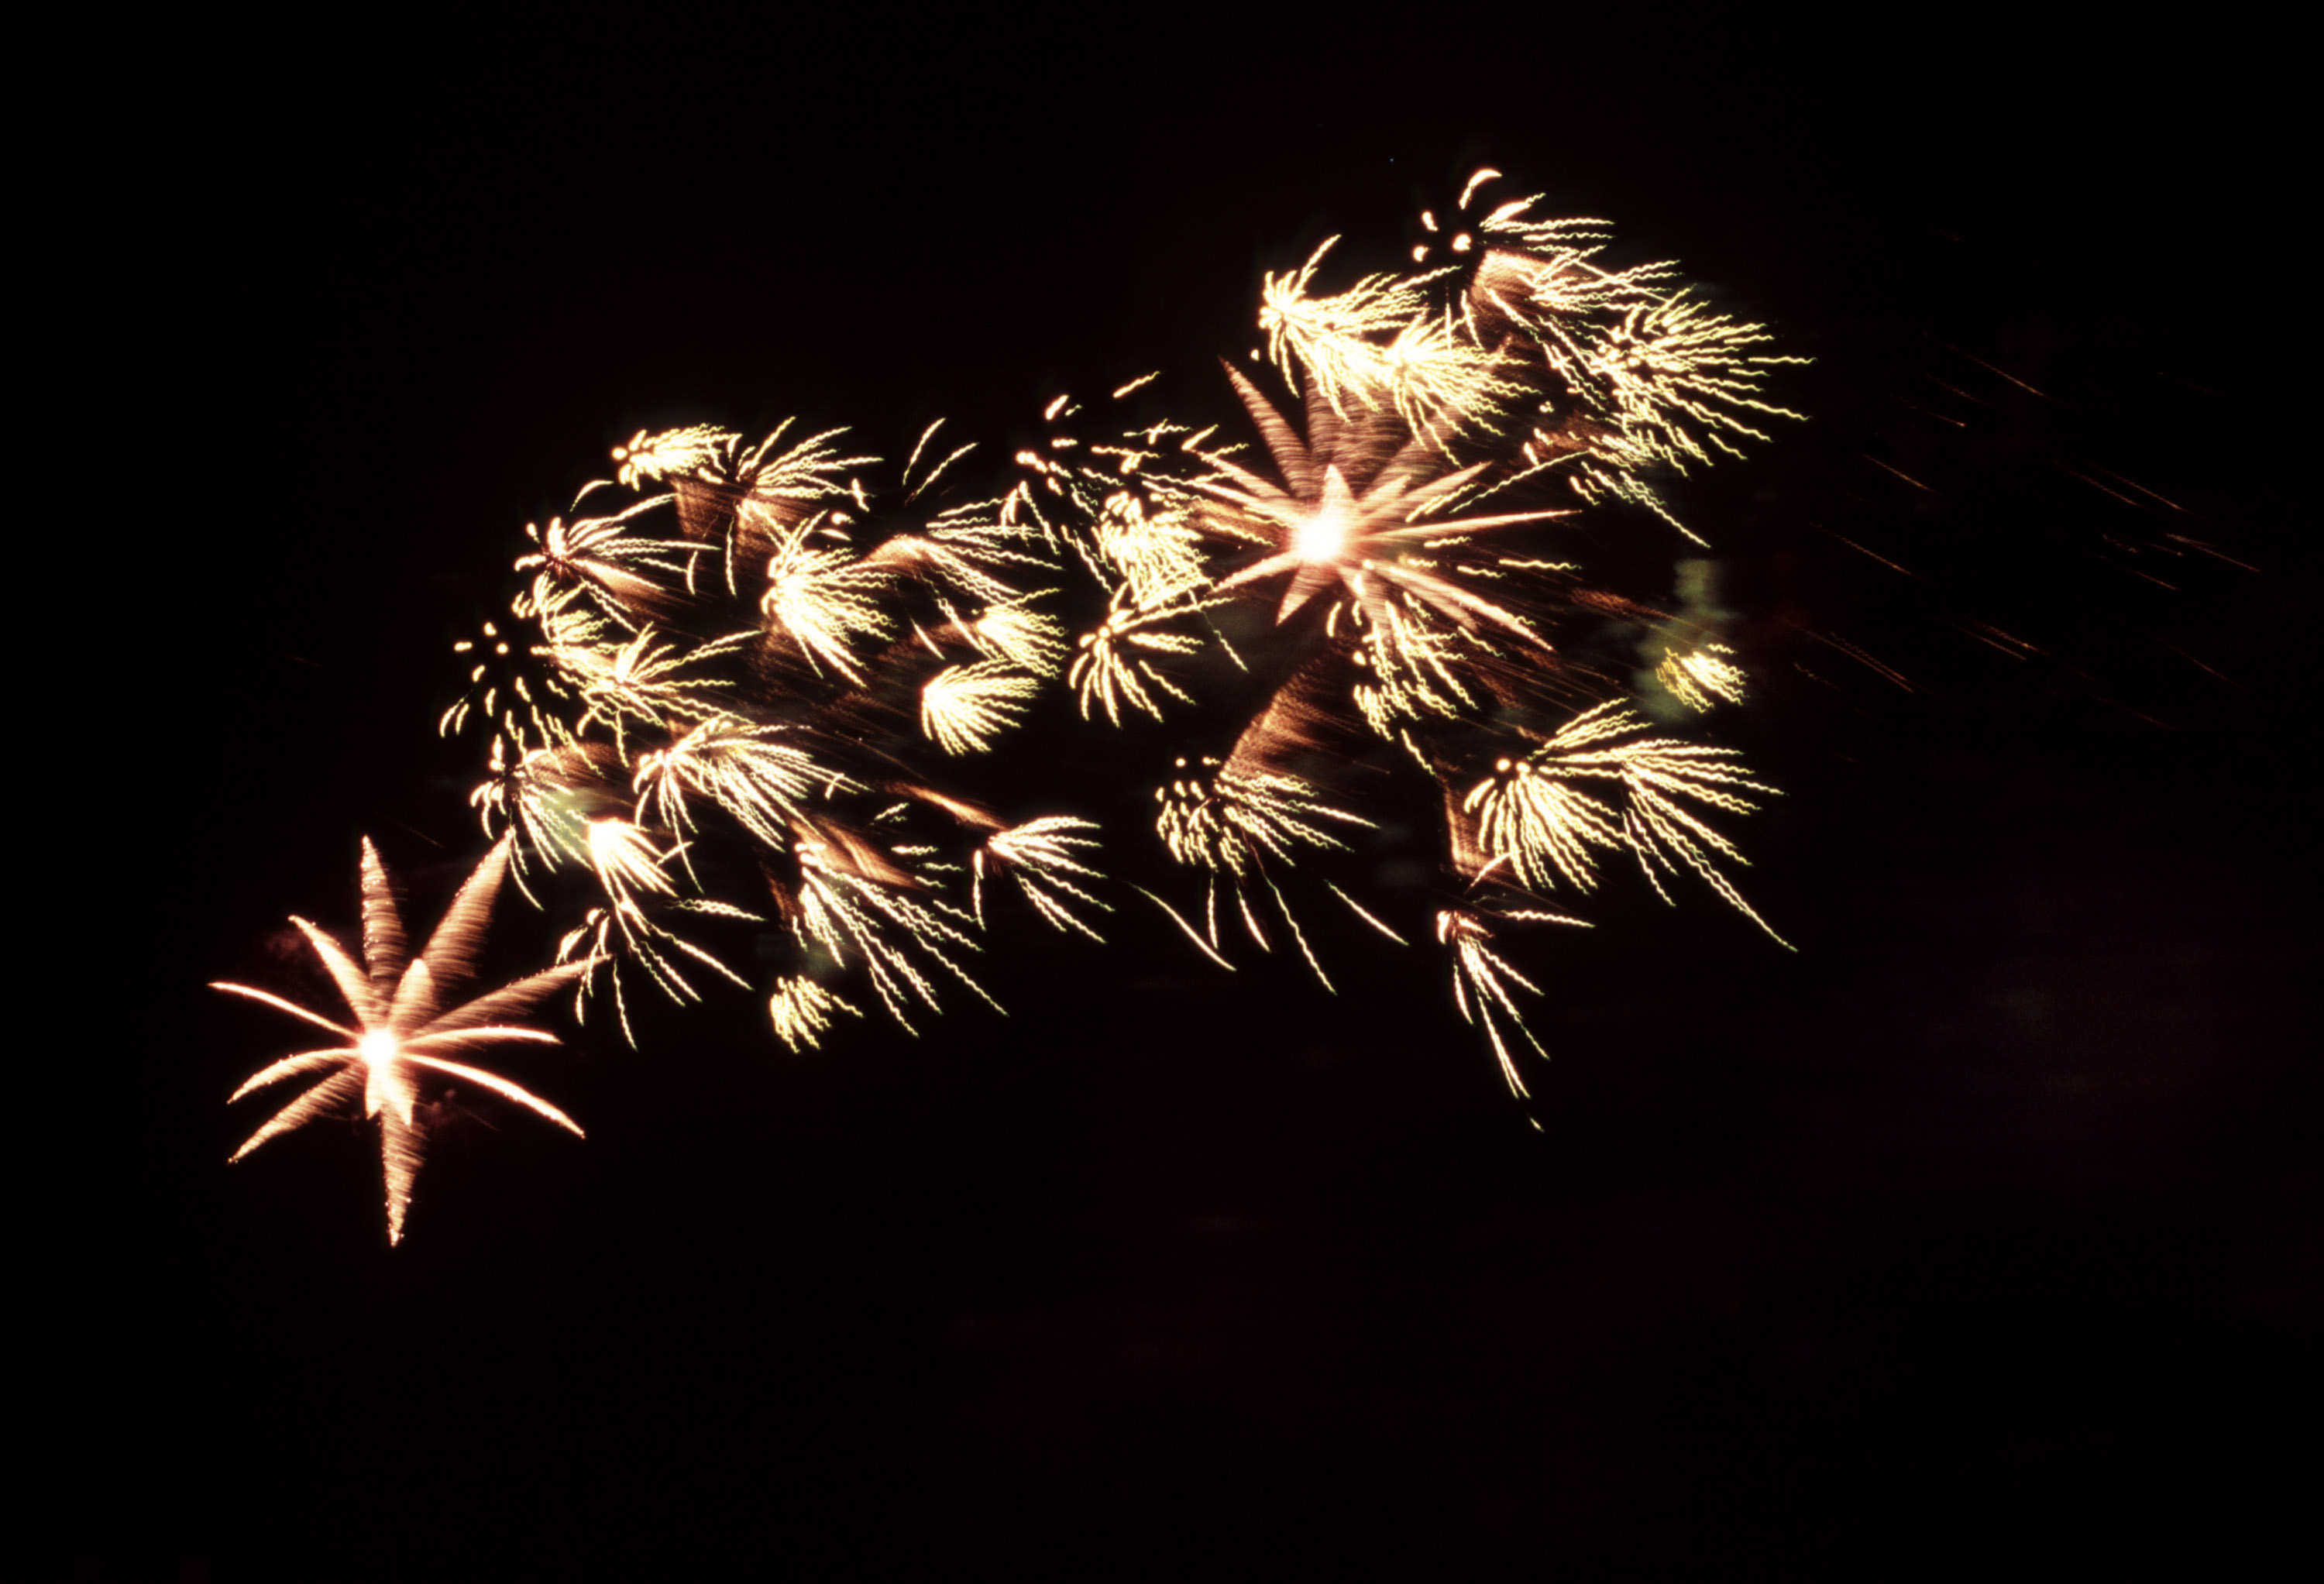 fireworks sparkling in the night sky, celebration of christmas and the new year